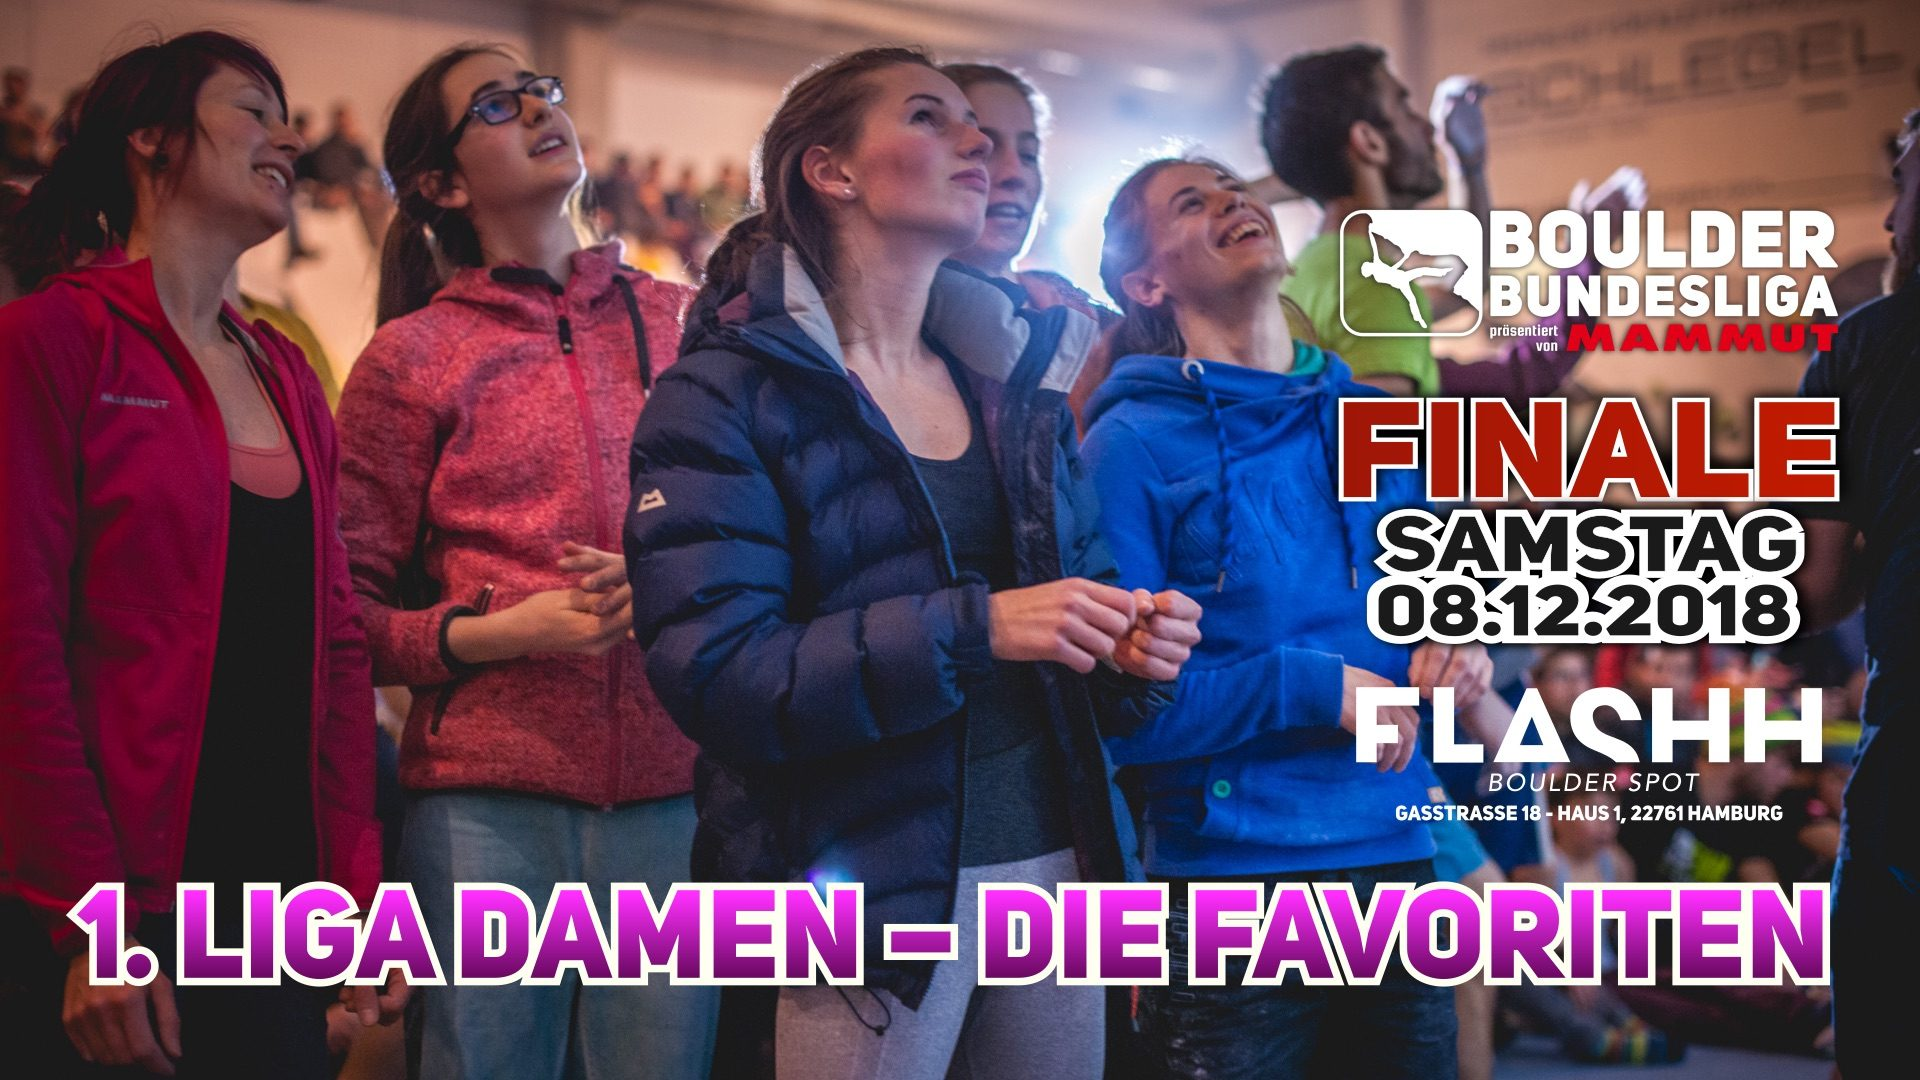 Favoriten – 1. Liga Damen